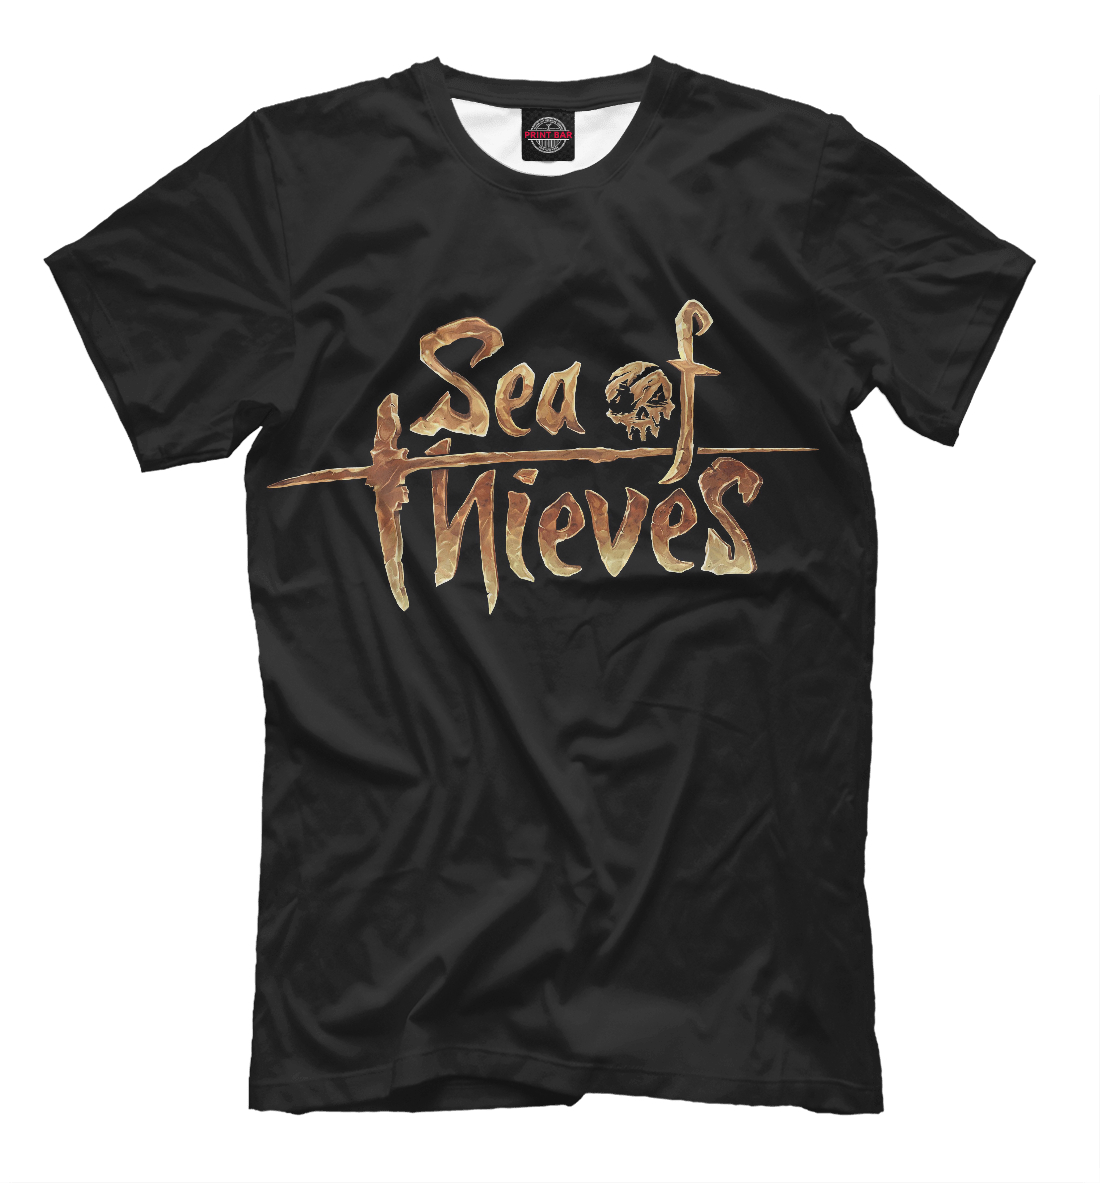 Sea of Thieves thick as thieves